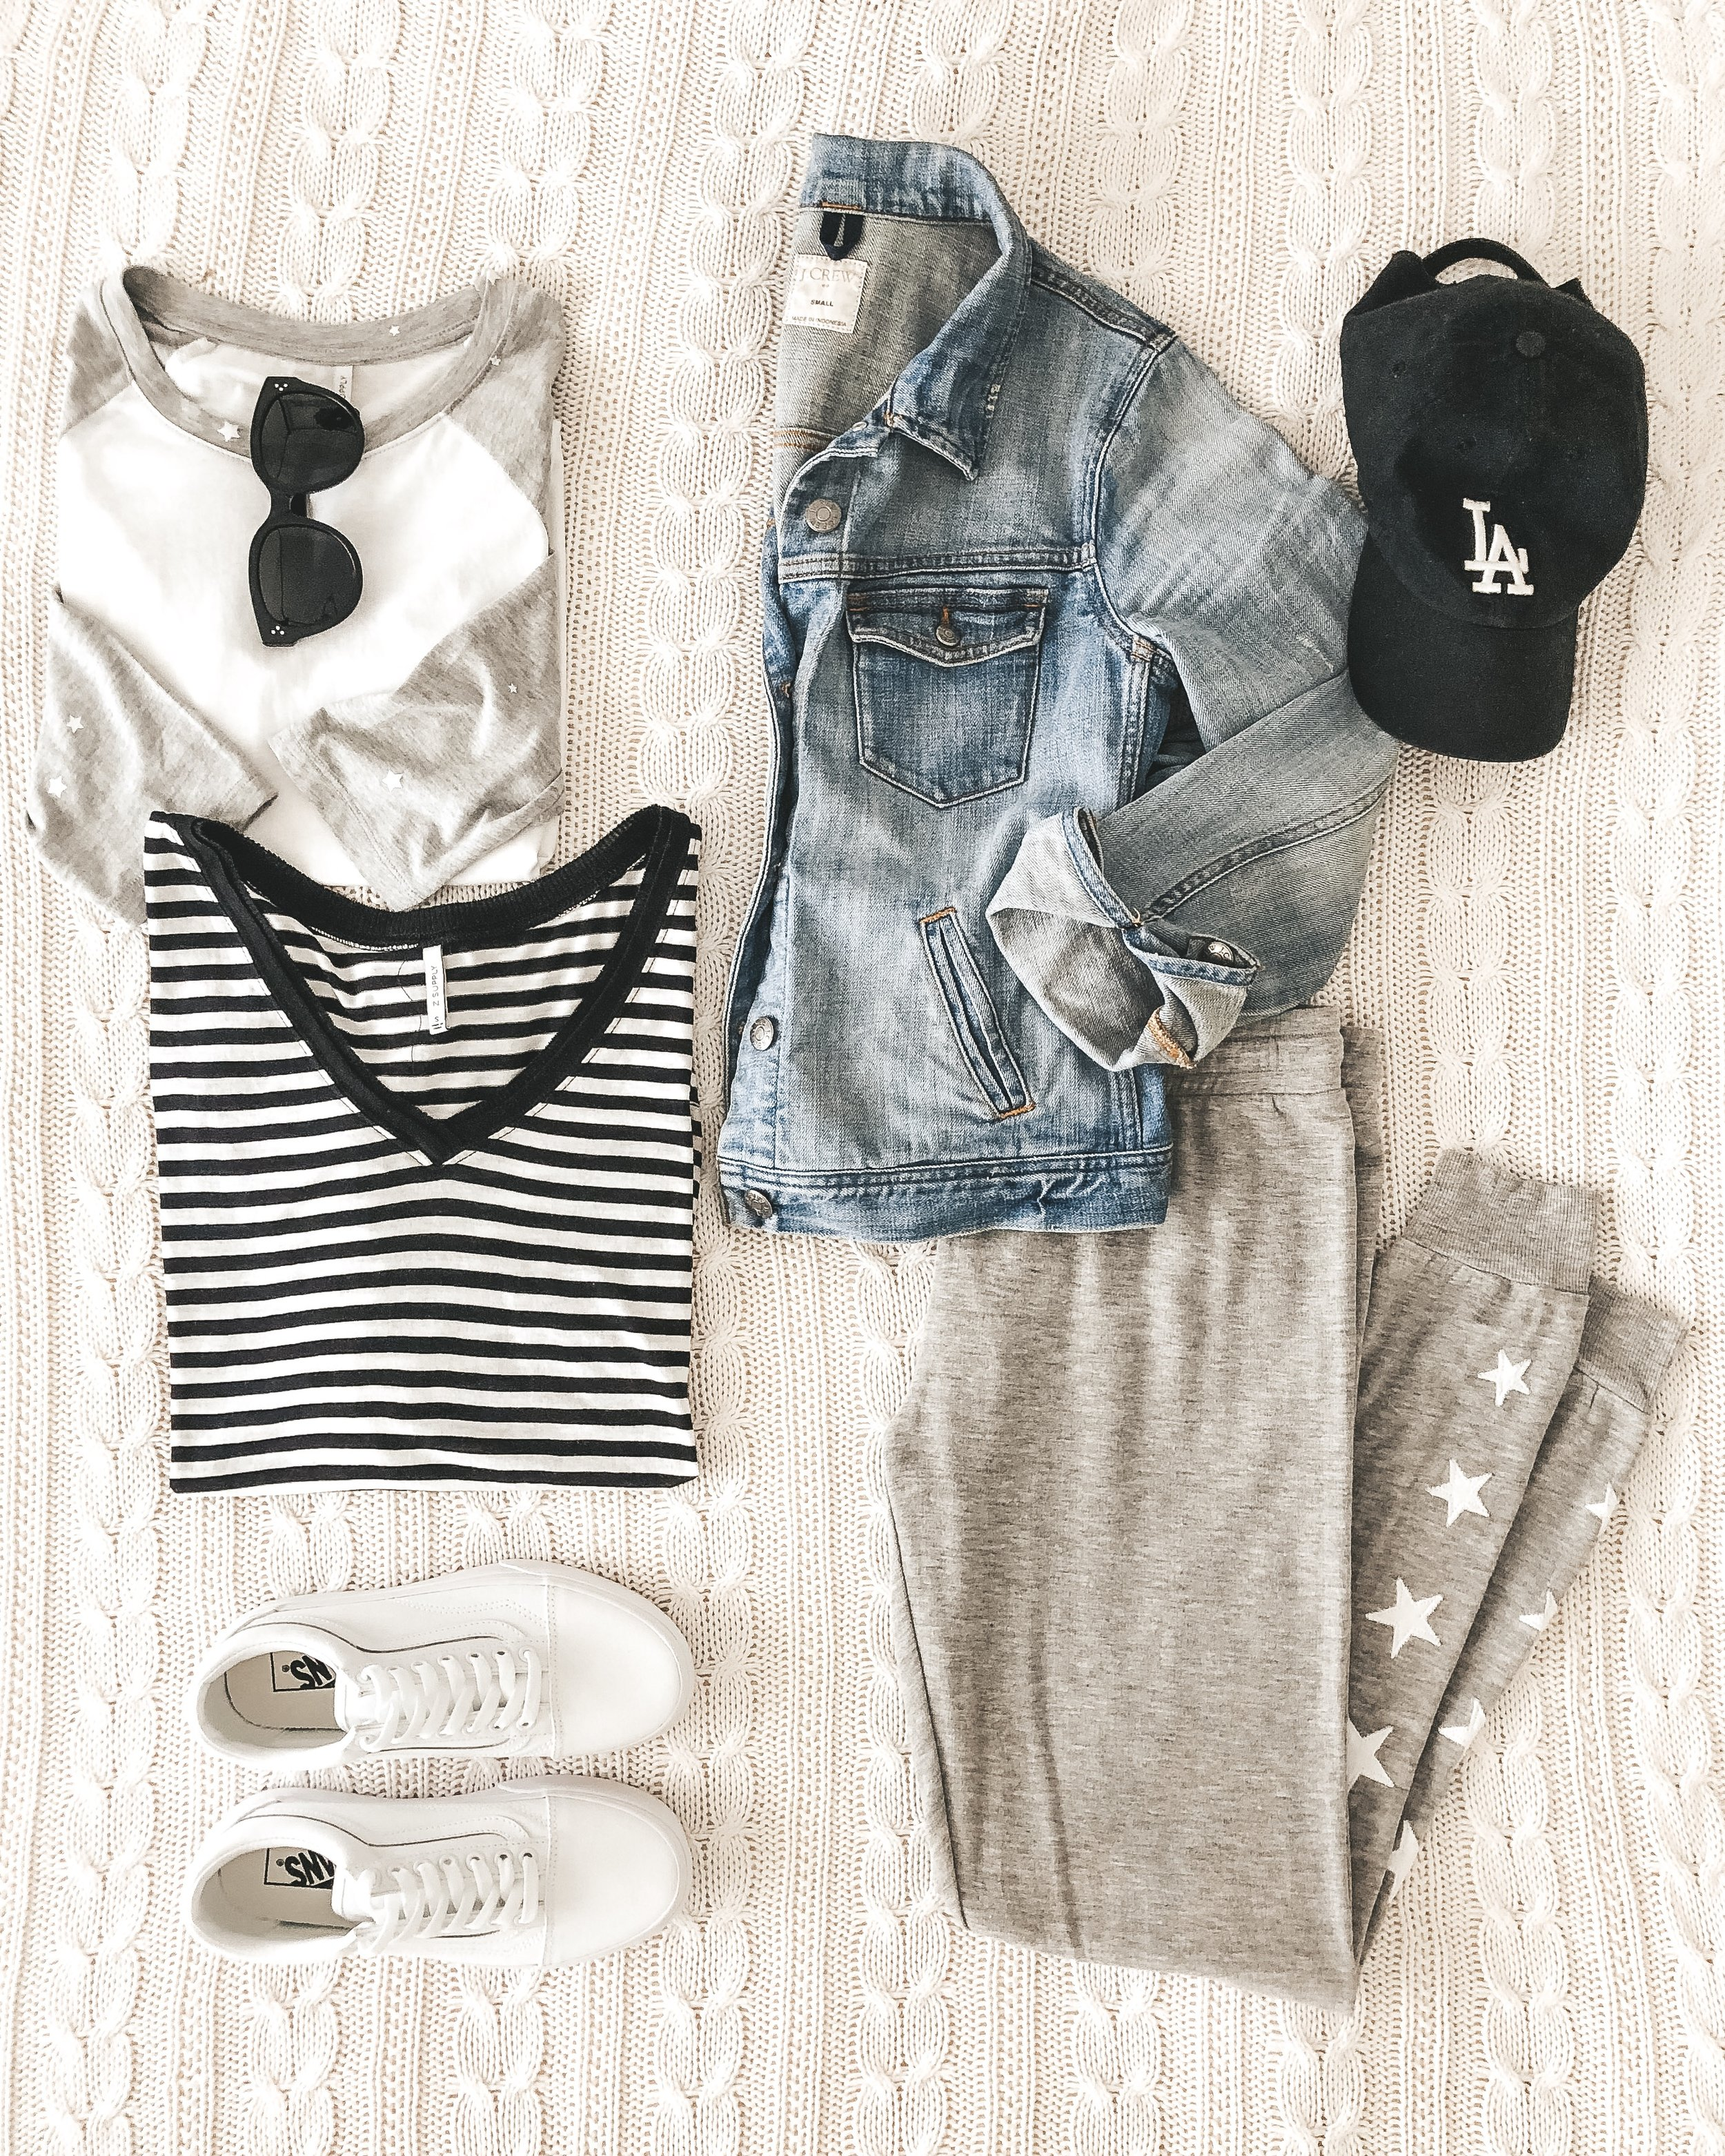 Cute weekend outfits from Z Supply.